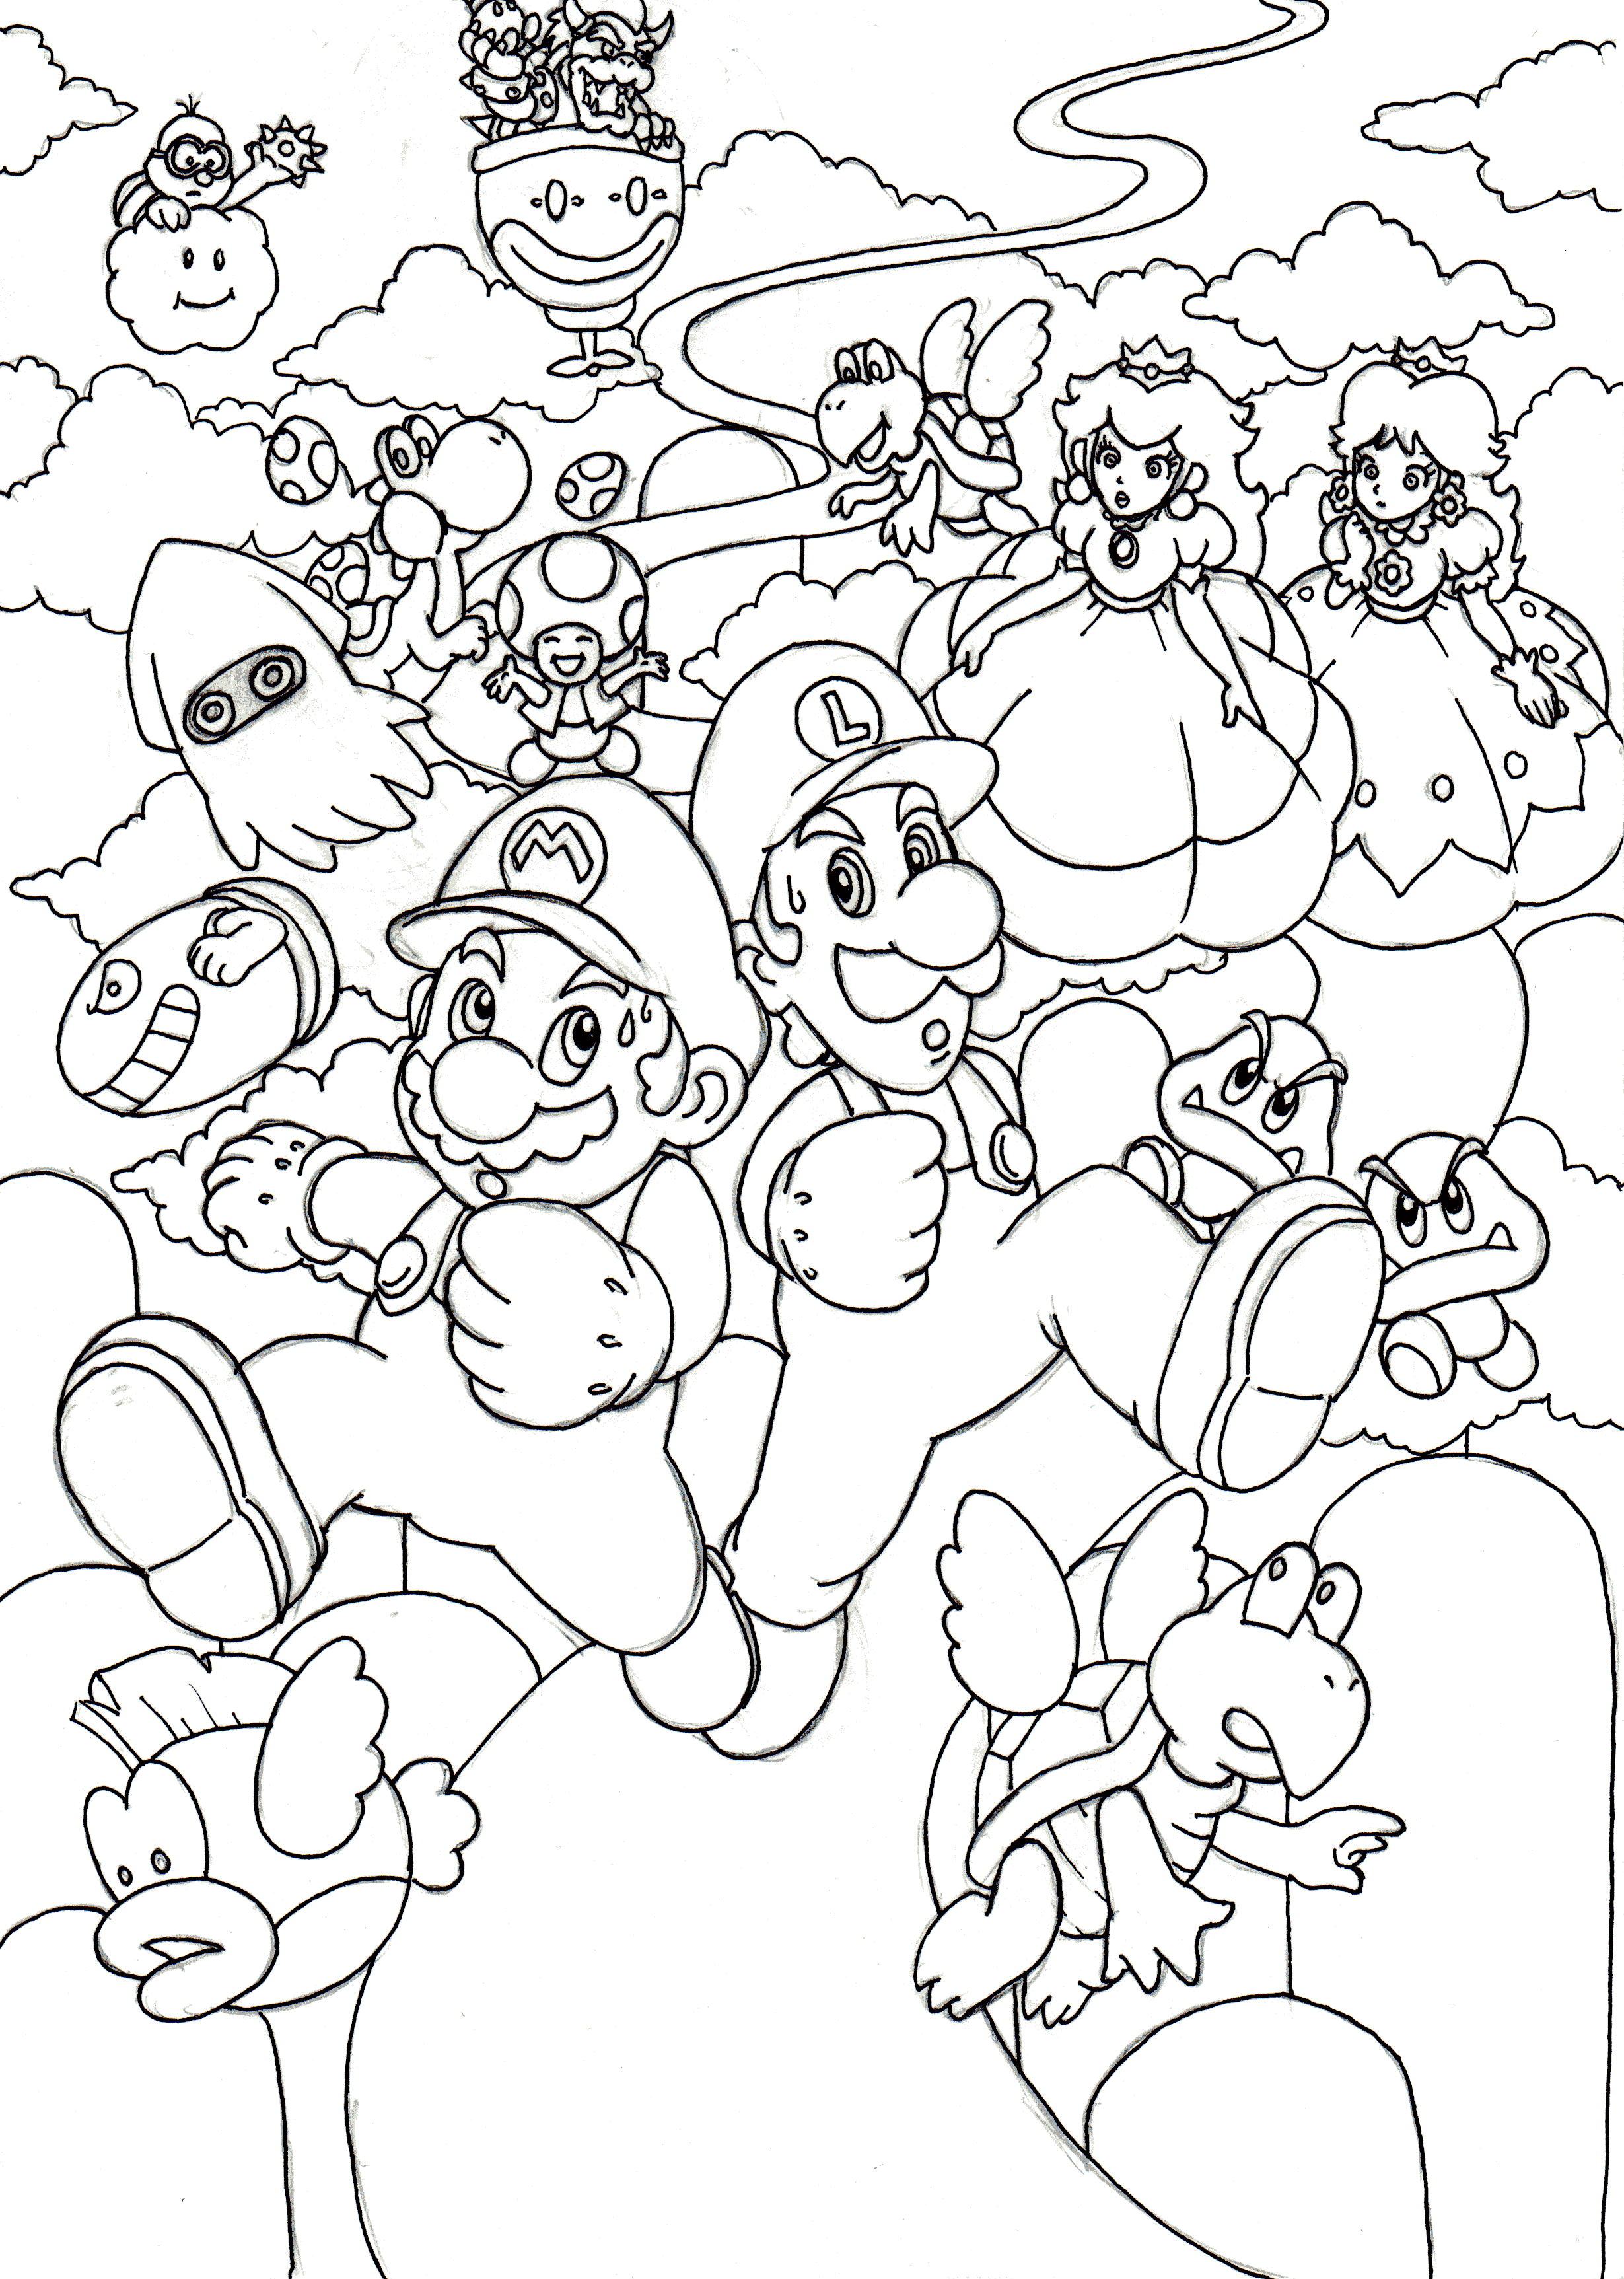 Mario Bros Drawing at GetDrawings.com | Free for personal use Mario ...